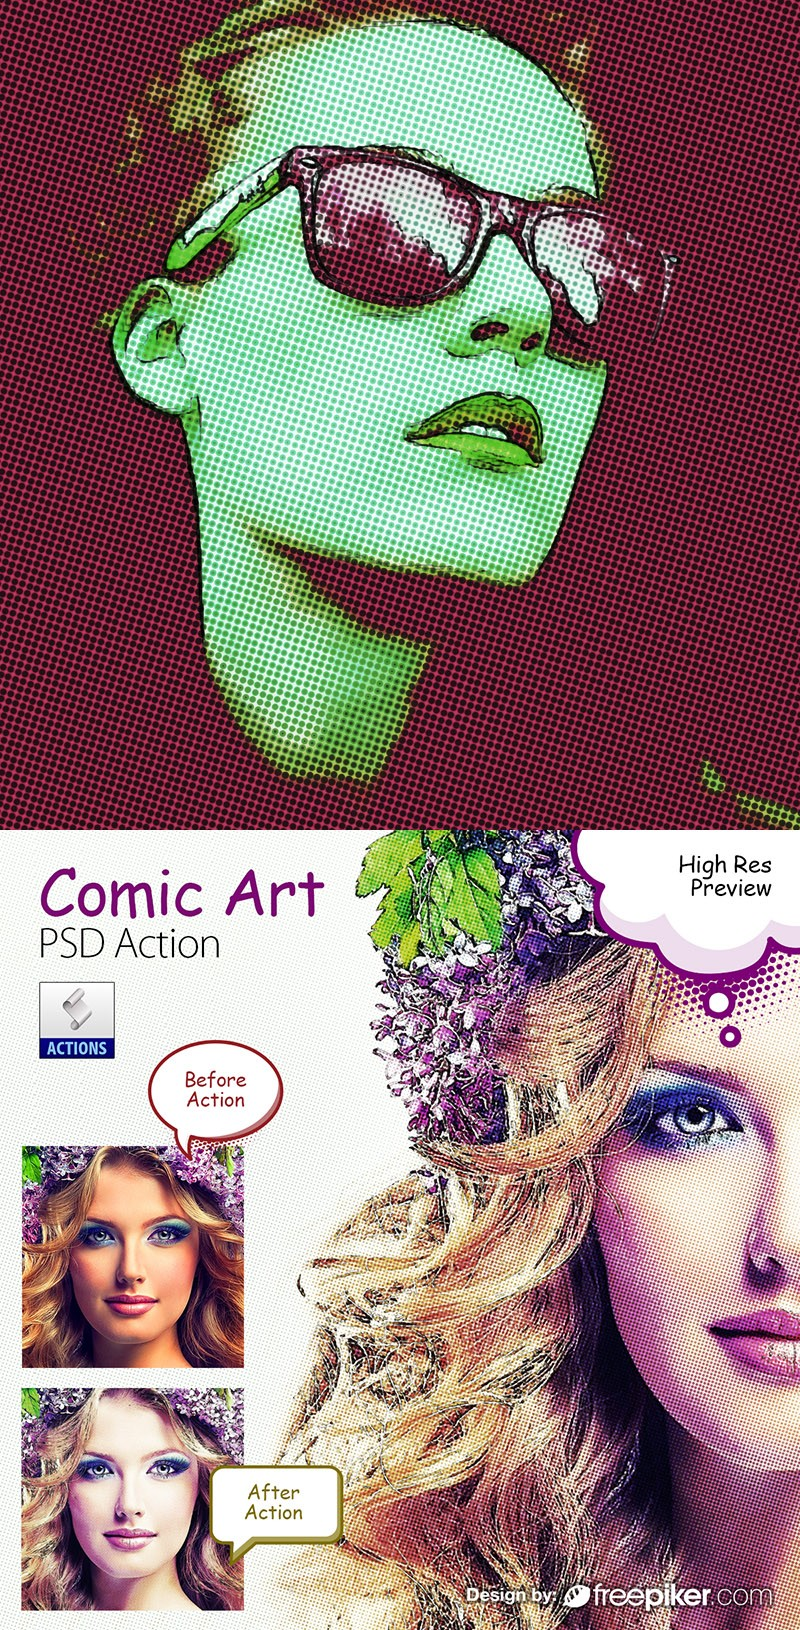 Comic Art PSD Action